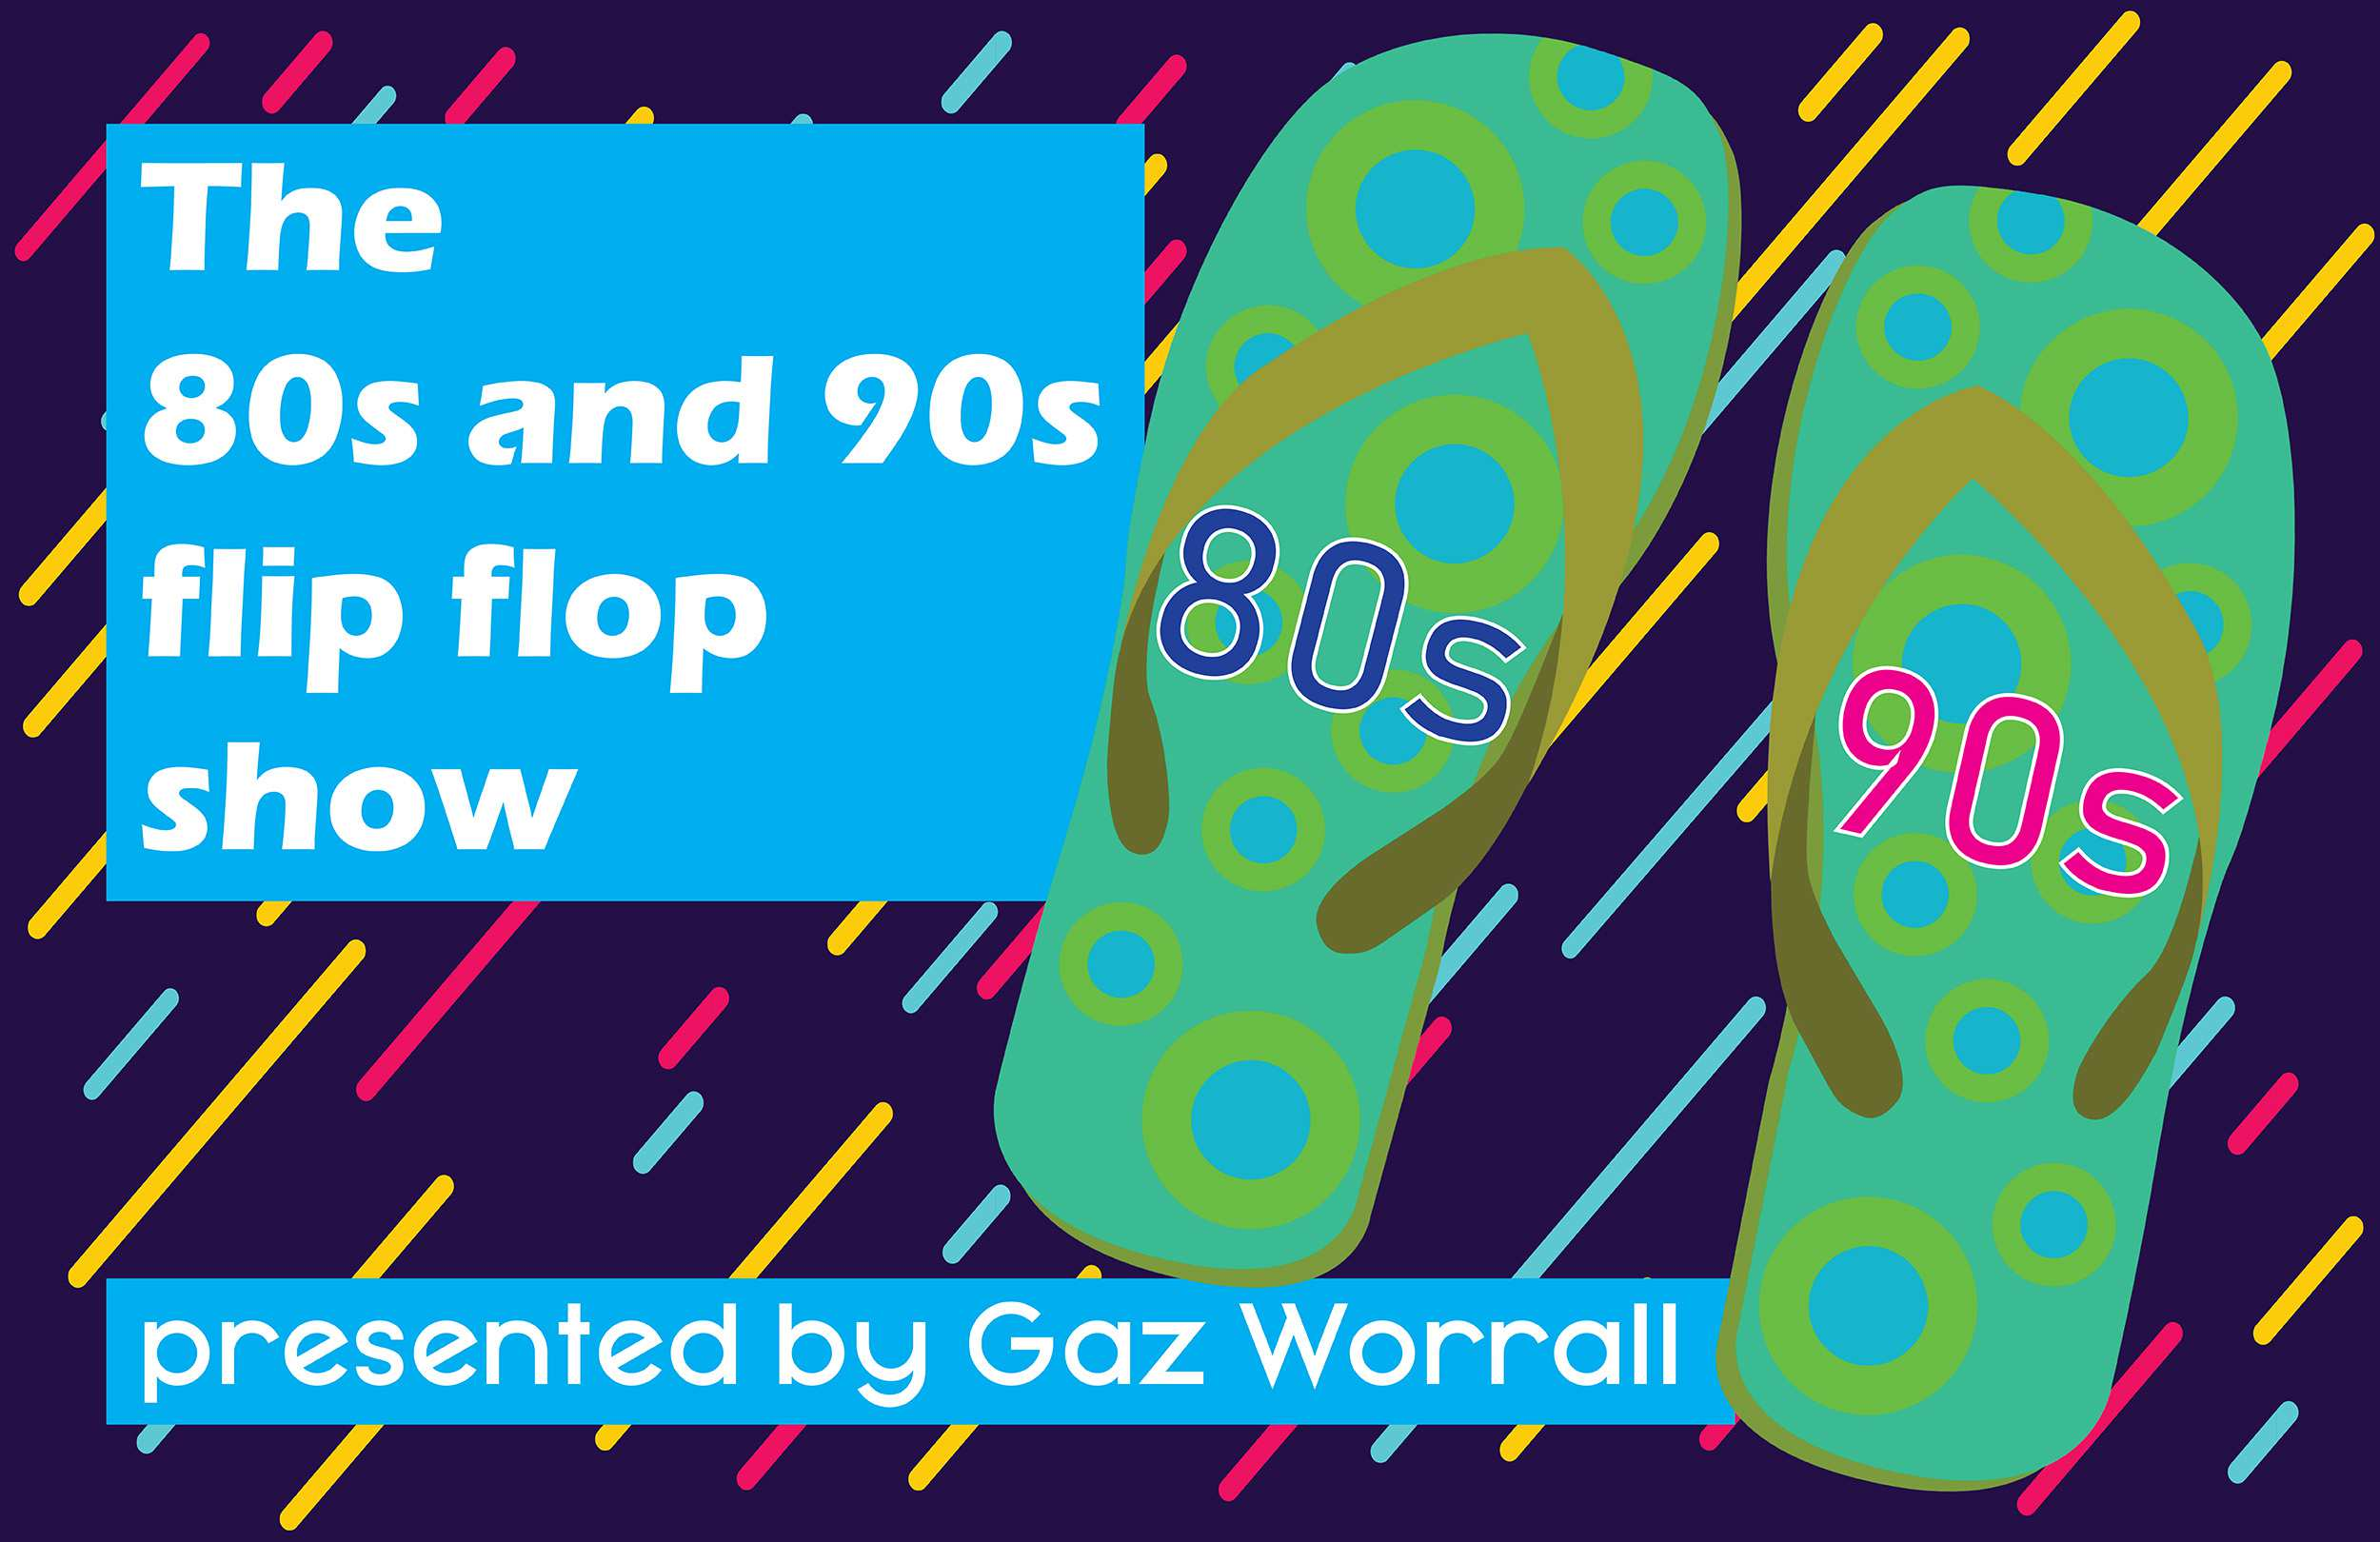 The 80s and 90s Flip Flop Show